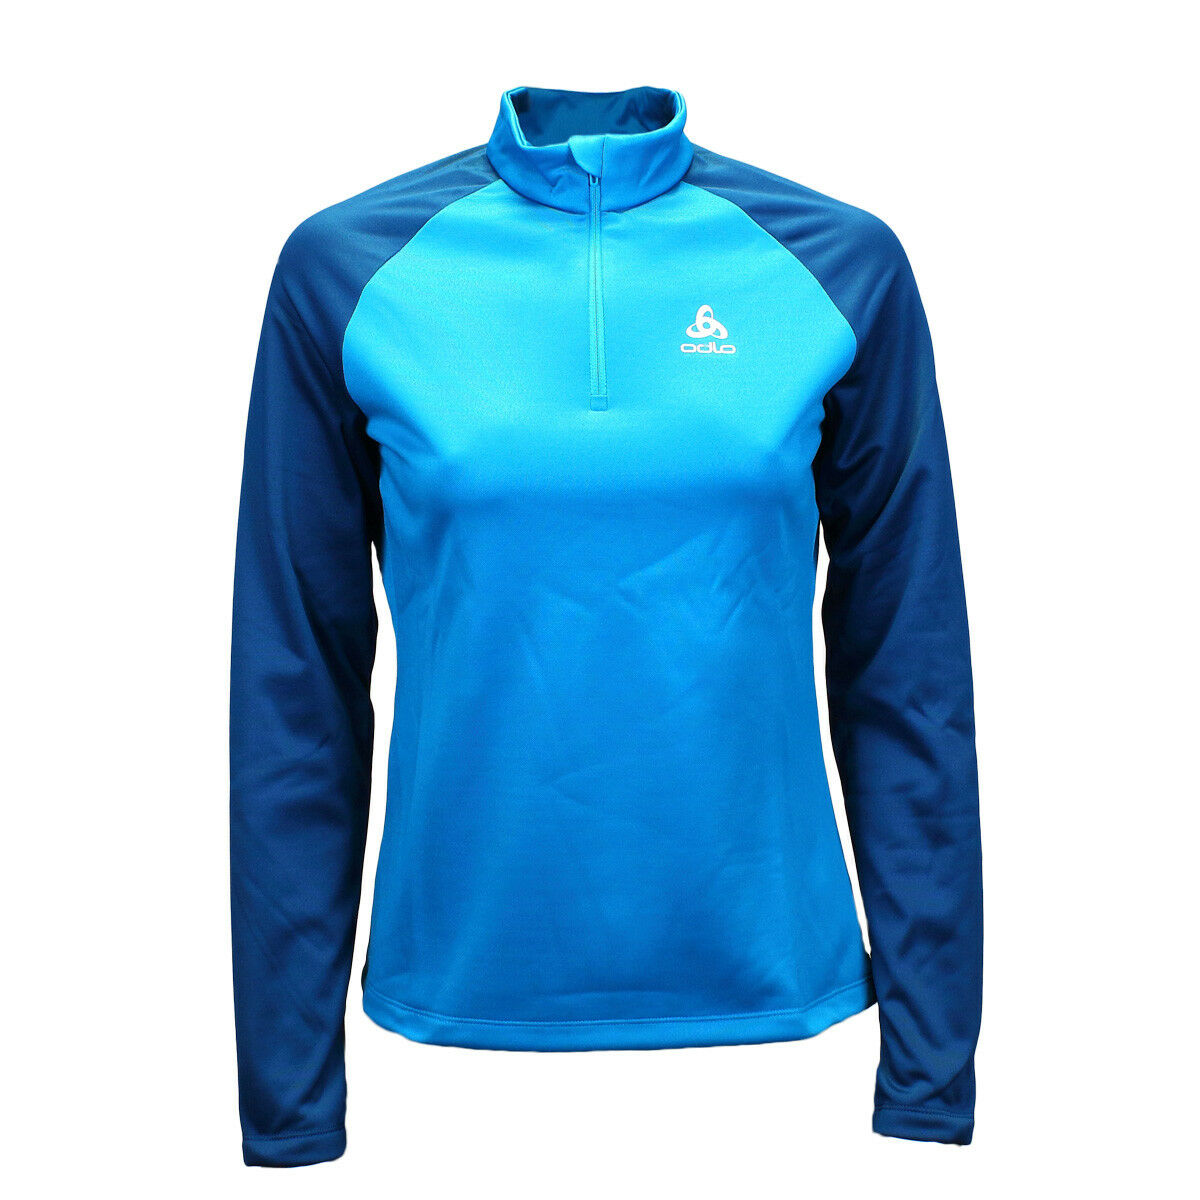 Odlo planches midlayer 1 2 ZIP top Lady   592871-20527 Turkish Tile